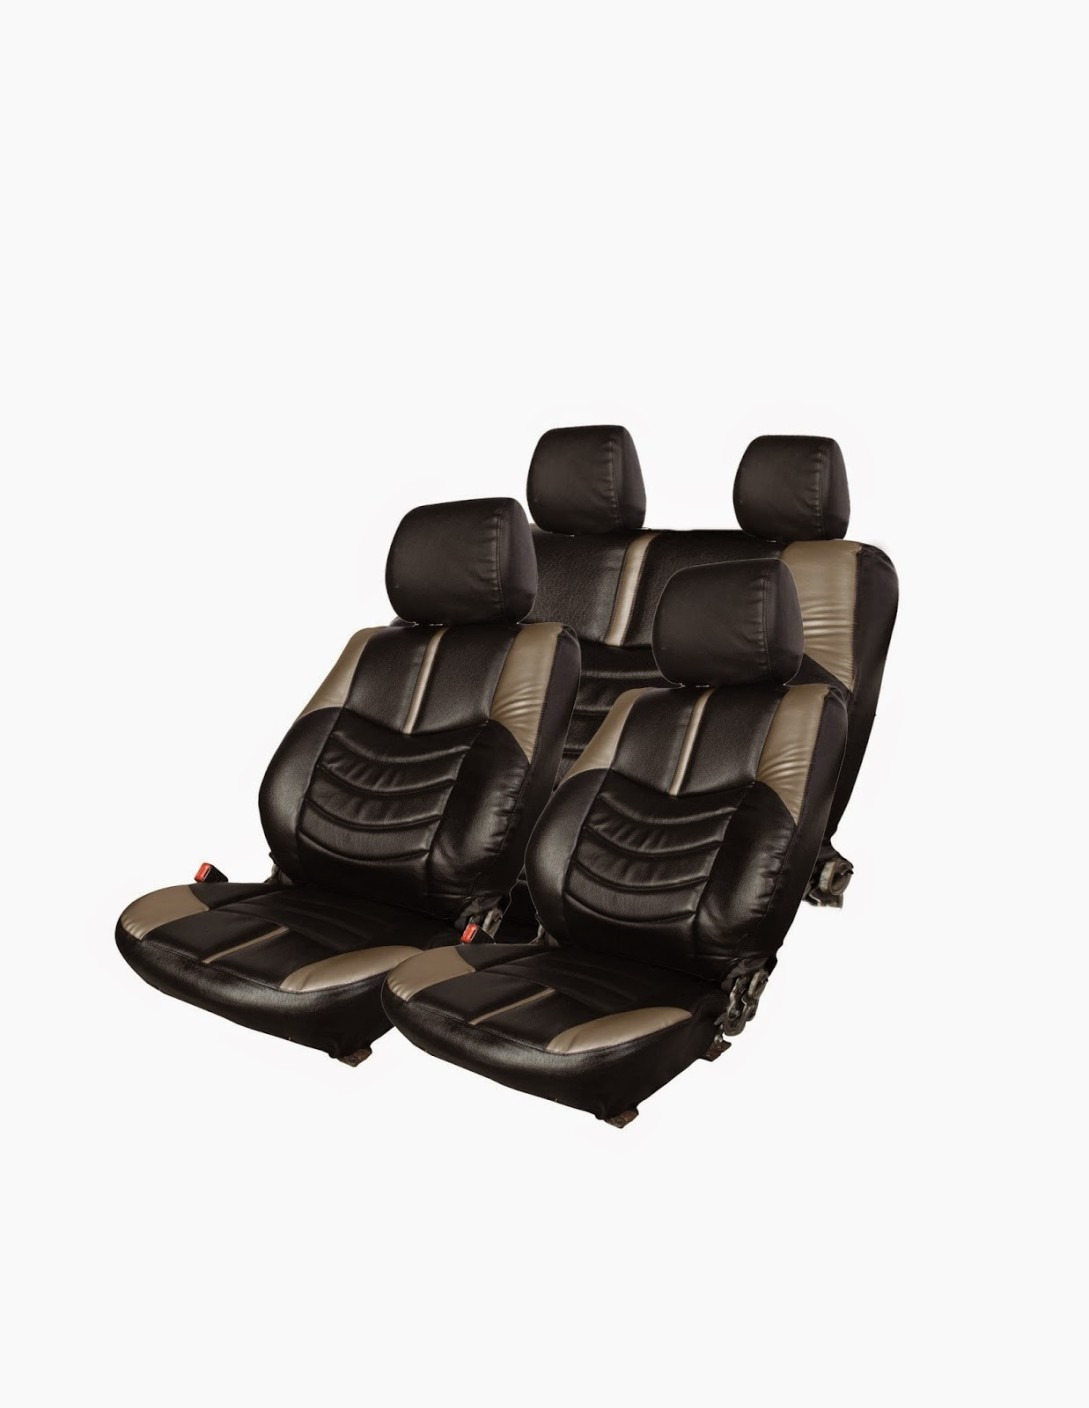 Dios Leather Car Seat Cover For Maruti Baleno Price In